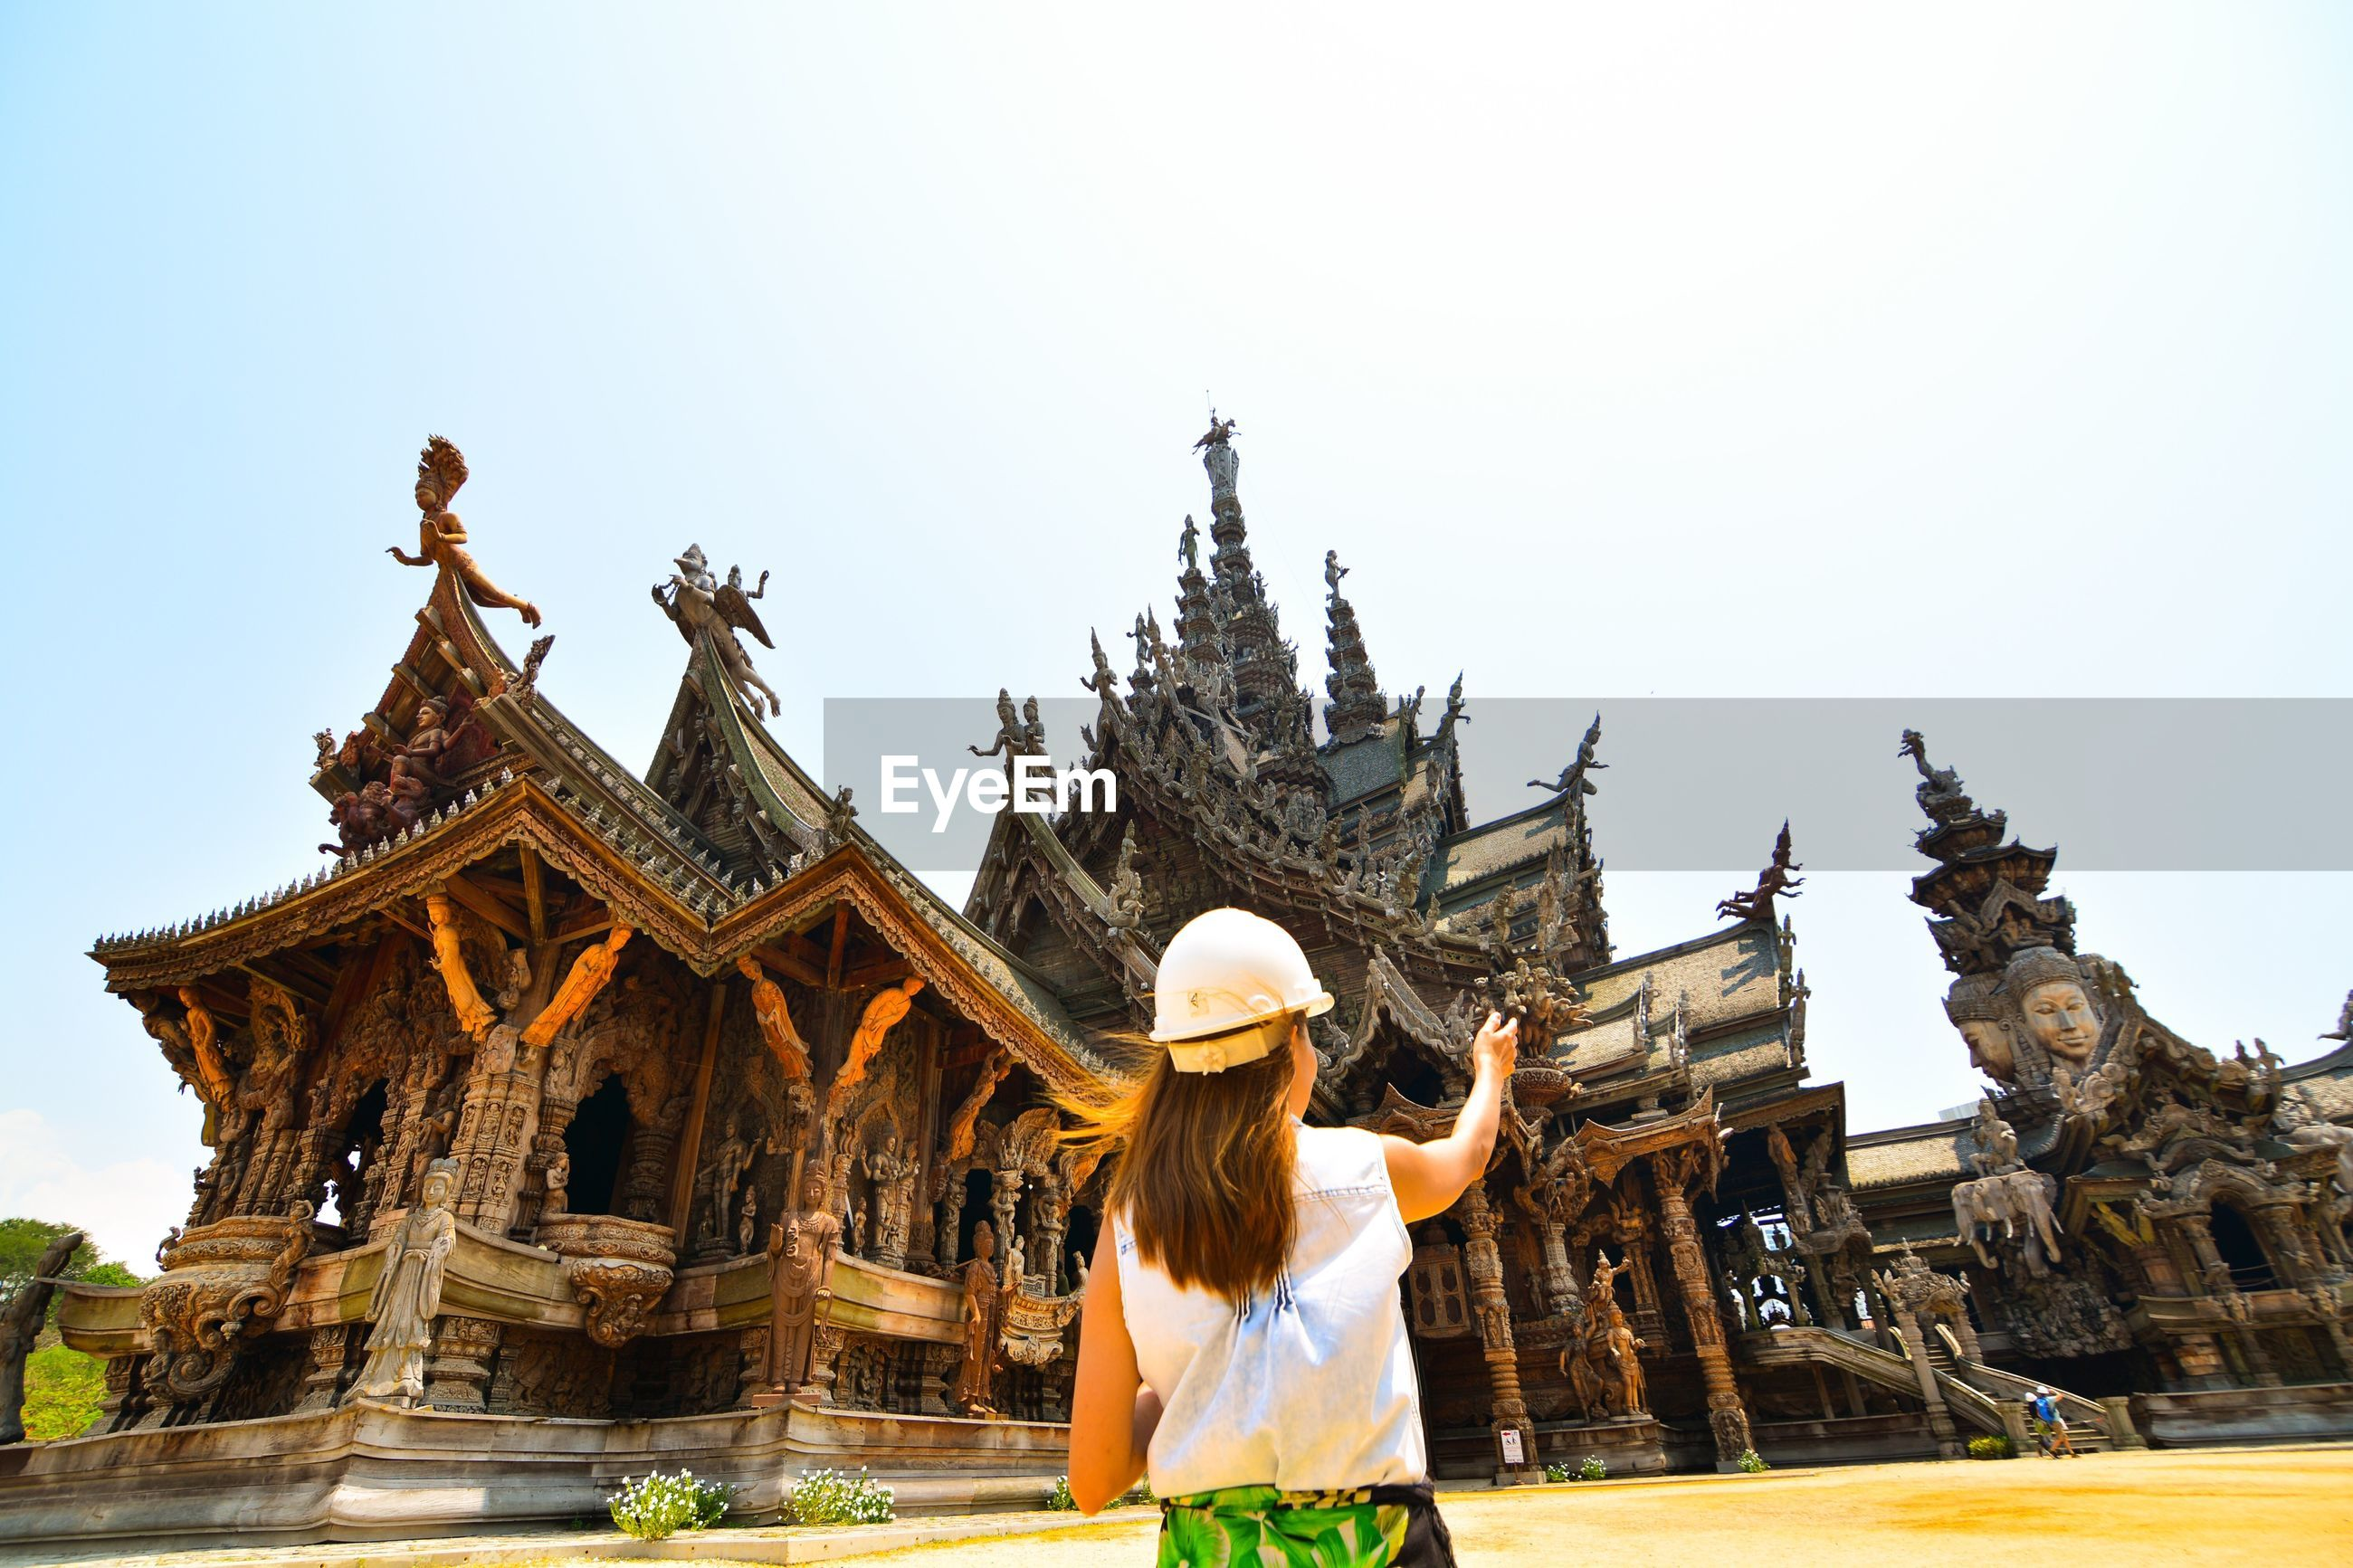 Rear view of woman on field at temple